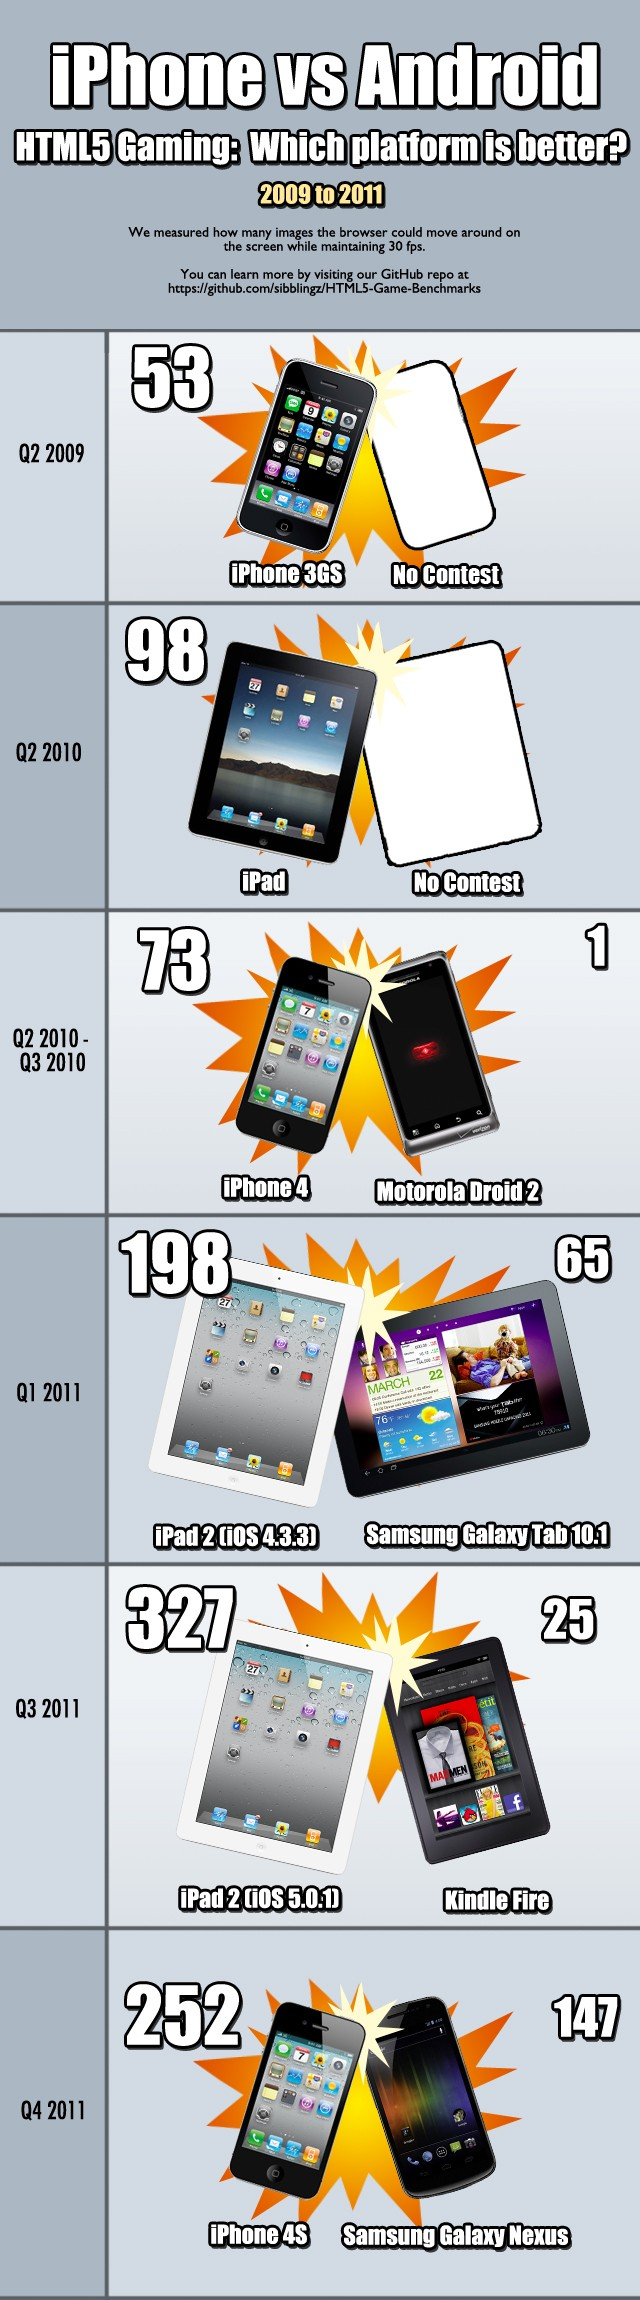 iPhone vs Android HTML5